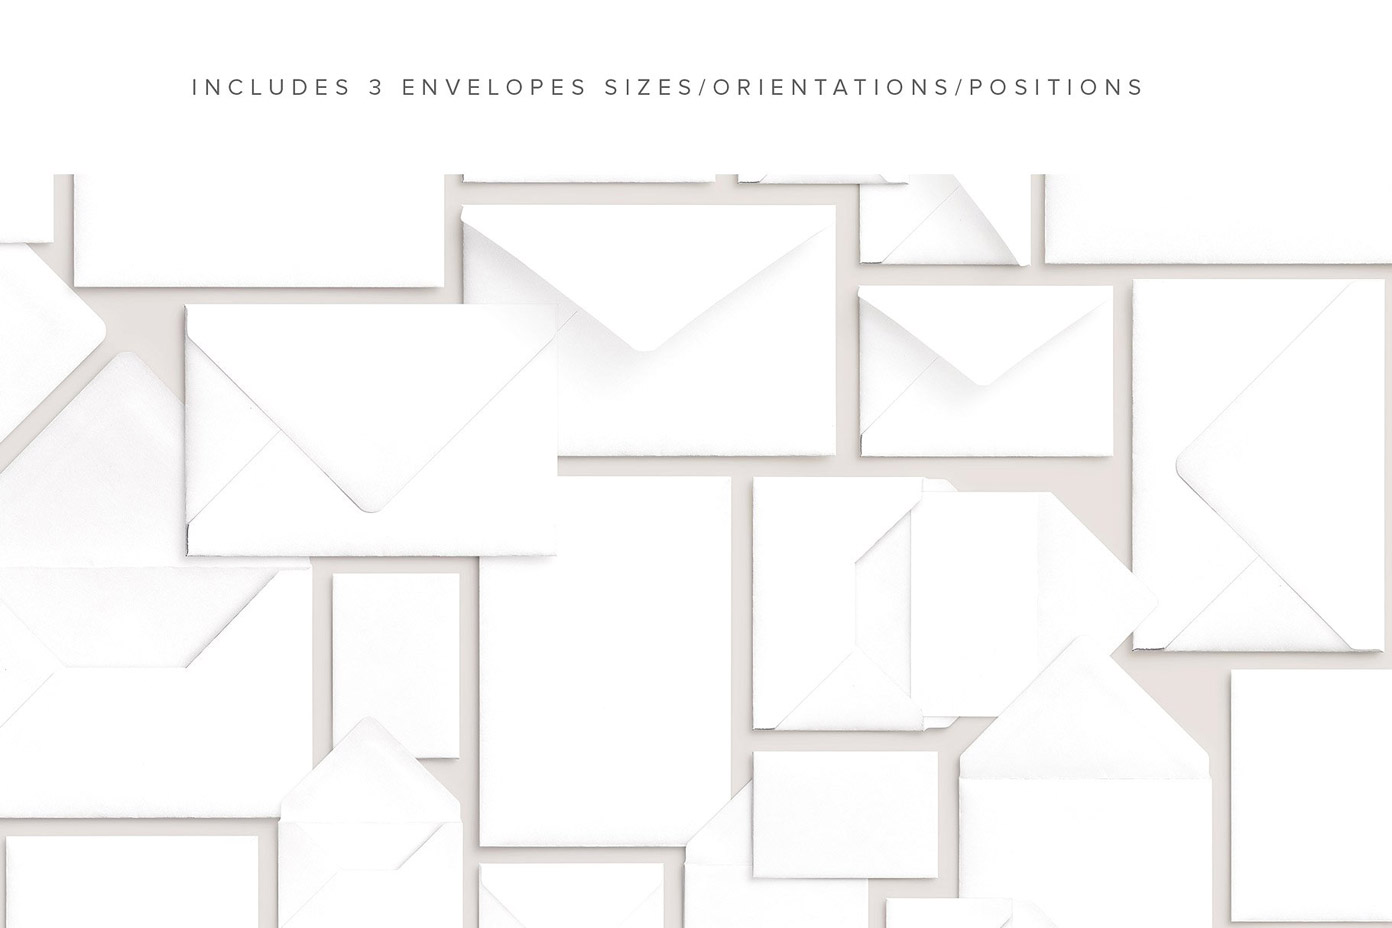 Cards and envelopes mockups scene creator by Román Jusdado